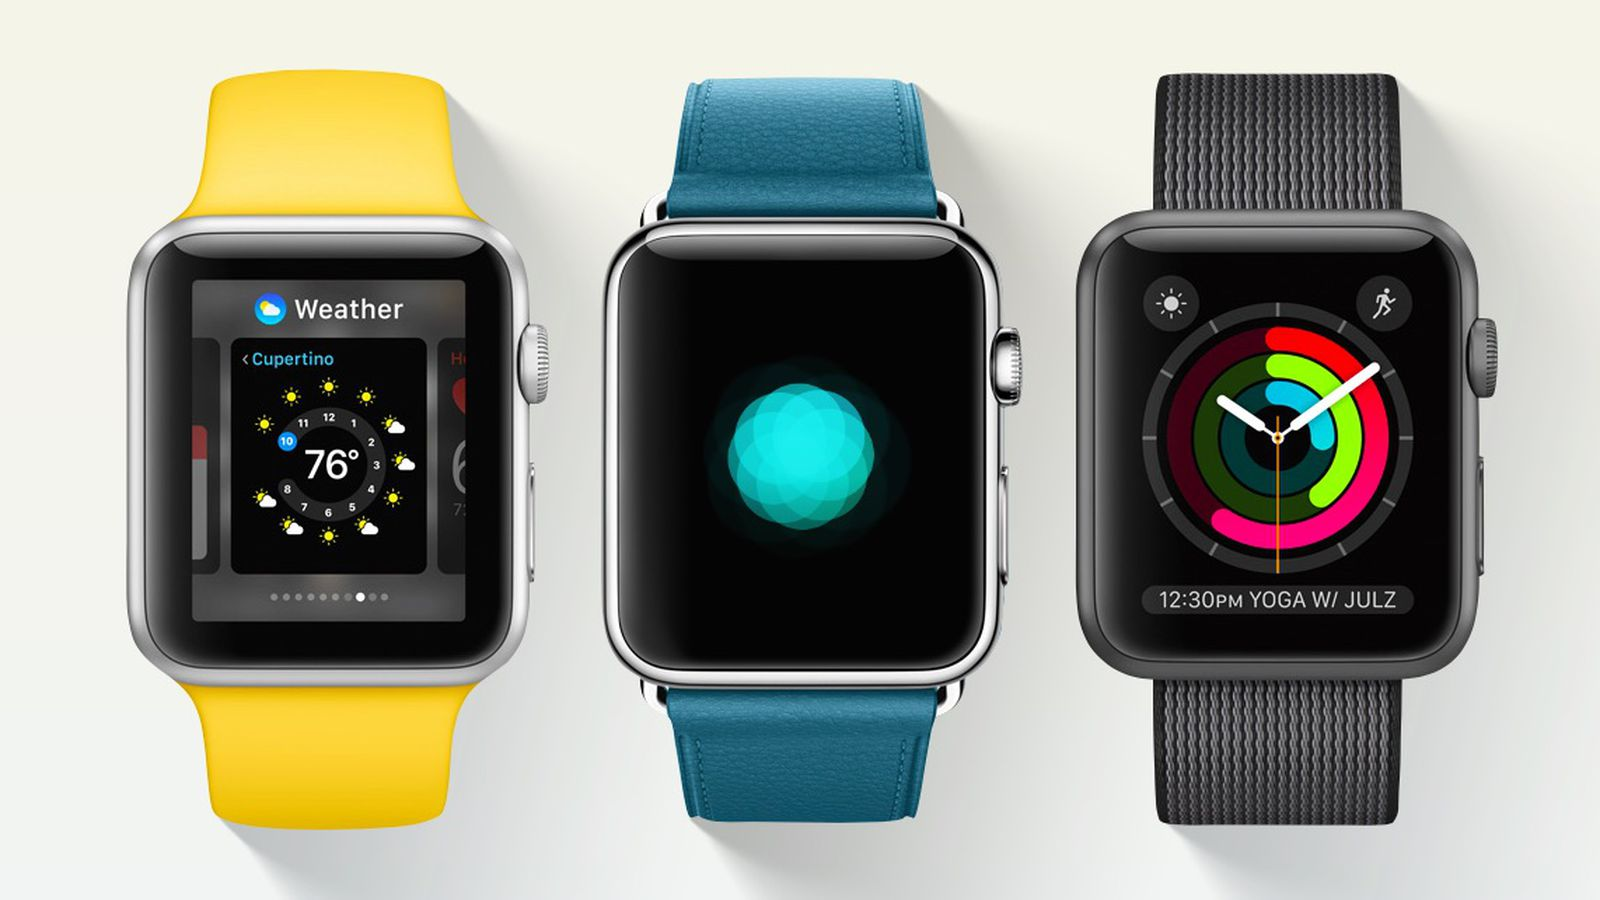 apple watch miglior smartwatch